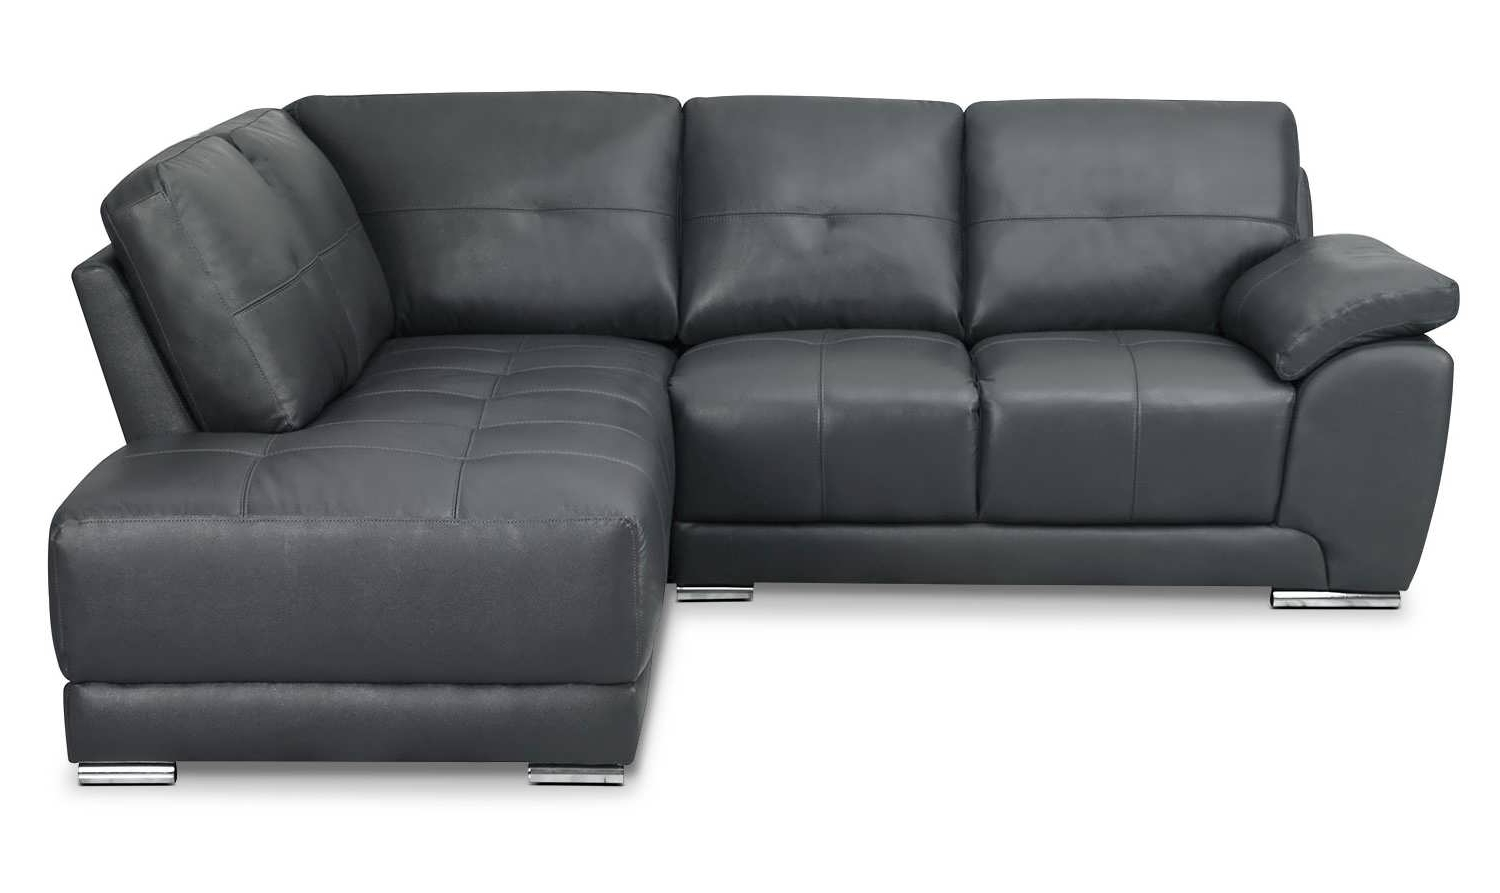 Sofa : Best Sectional Sofa Small Sectional Sofa With Chaise L Throughout Well Known L Shaped Couches With Chaise (View 3 of 15)